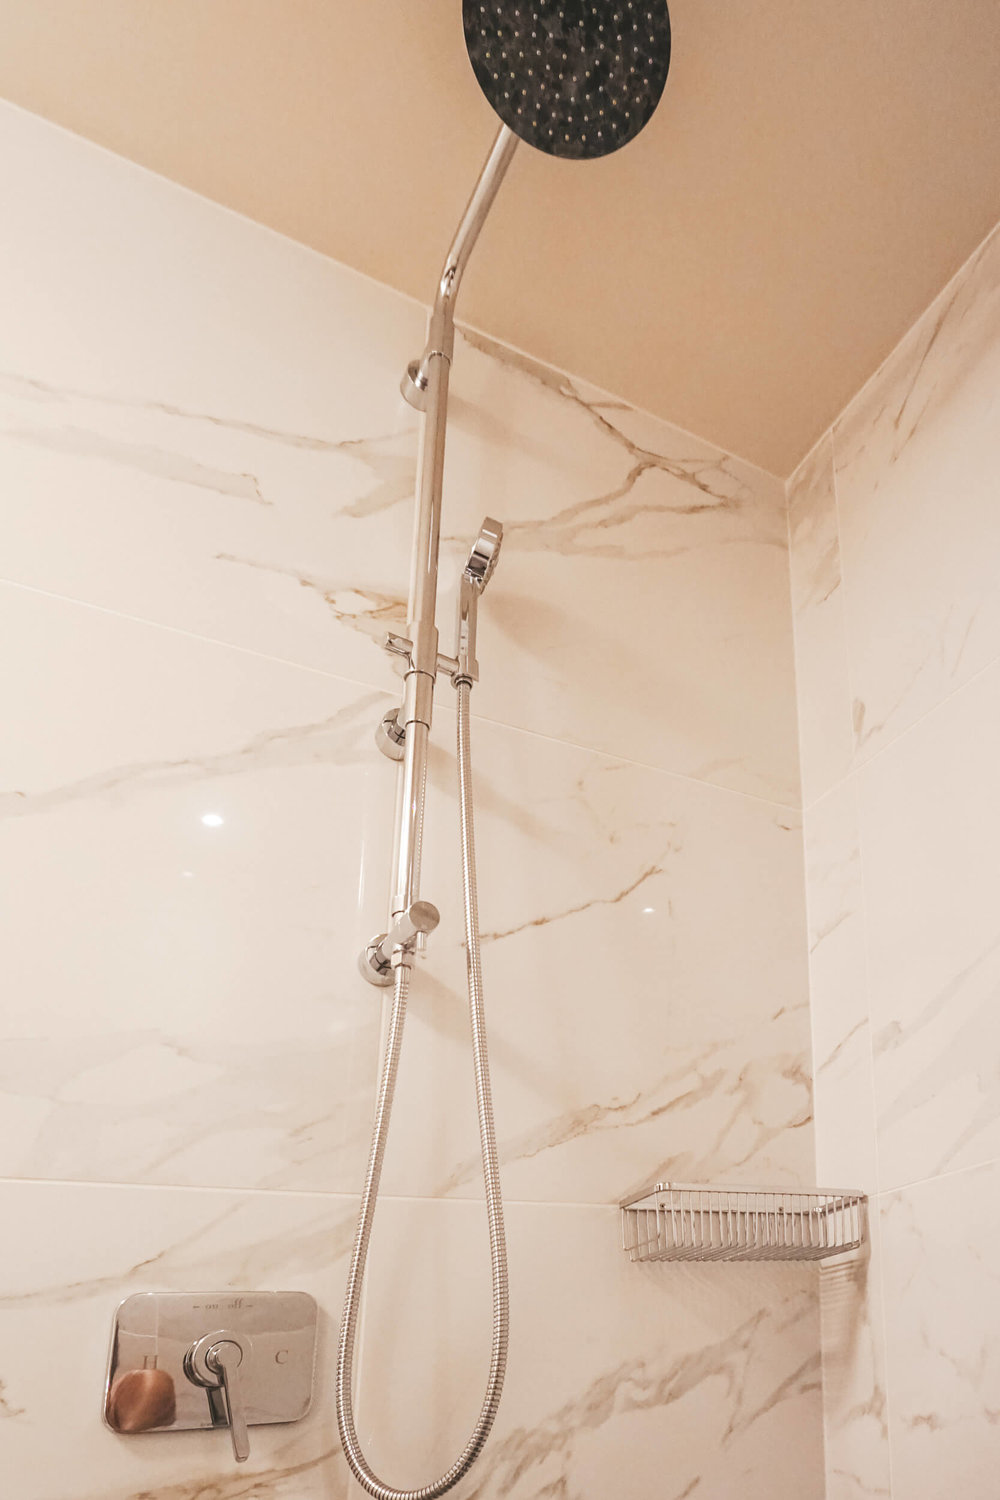 Luxury shower at Viceroy Chicago